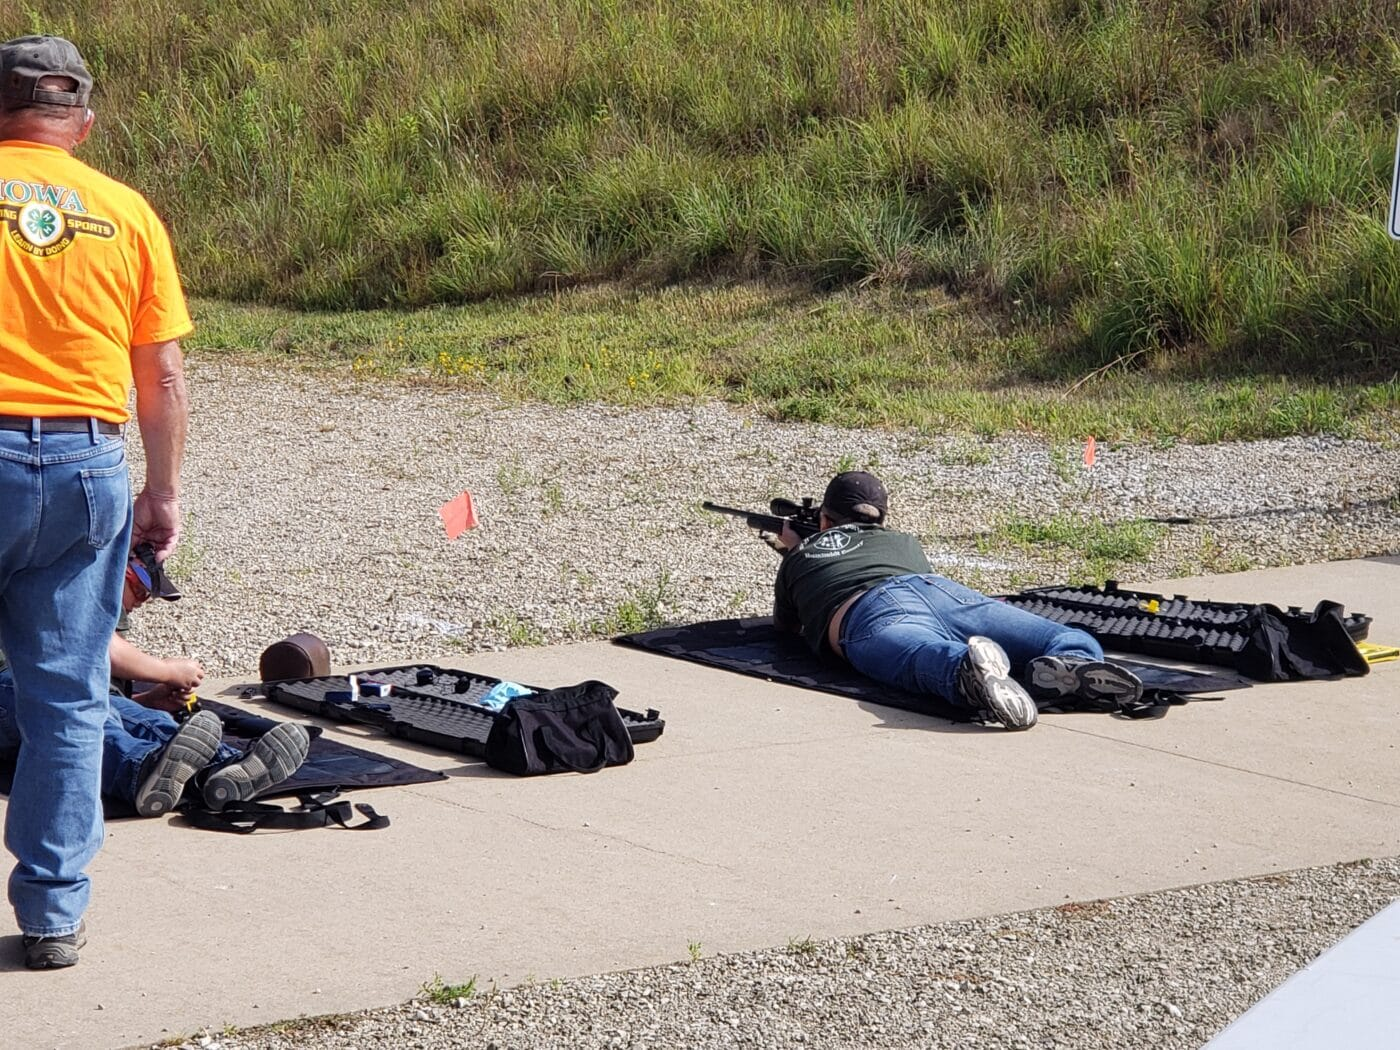 Rifle training offered by 4-H